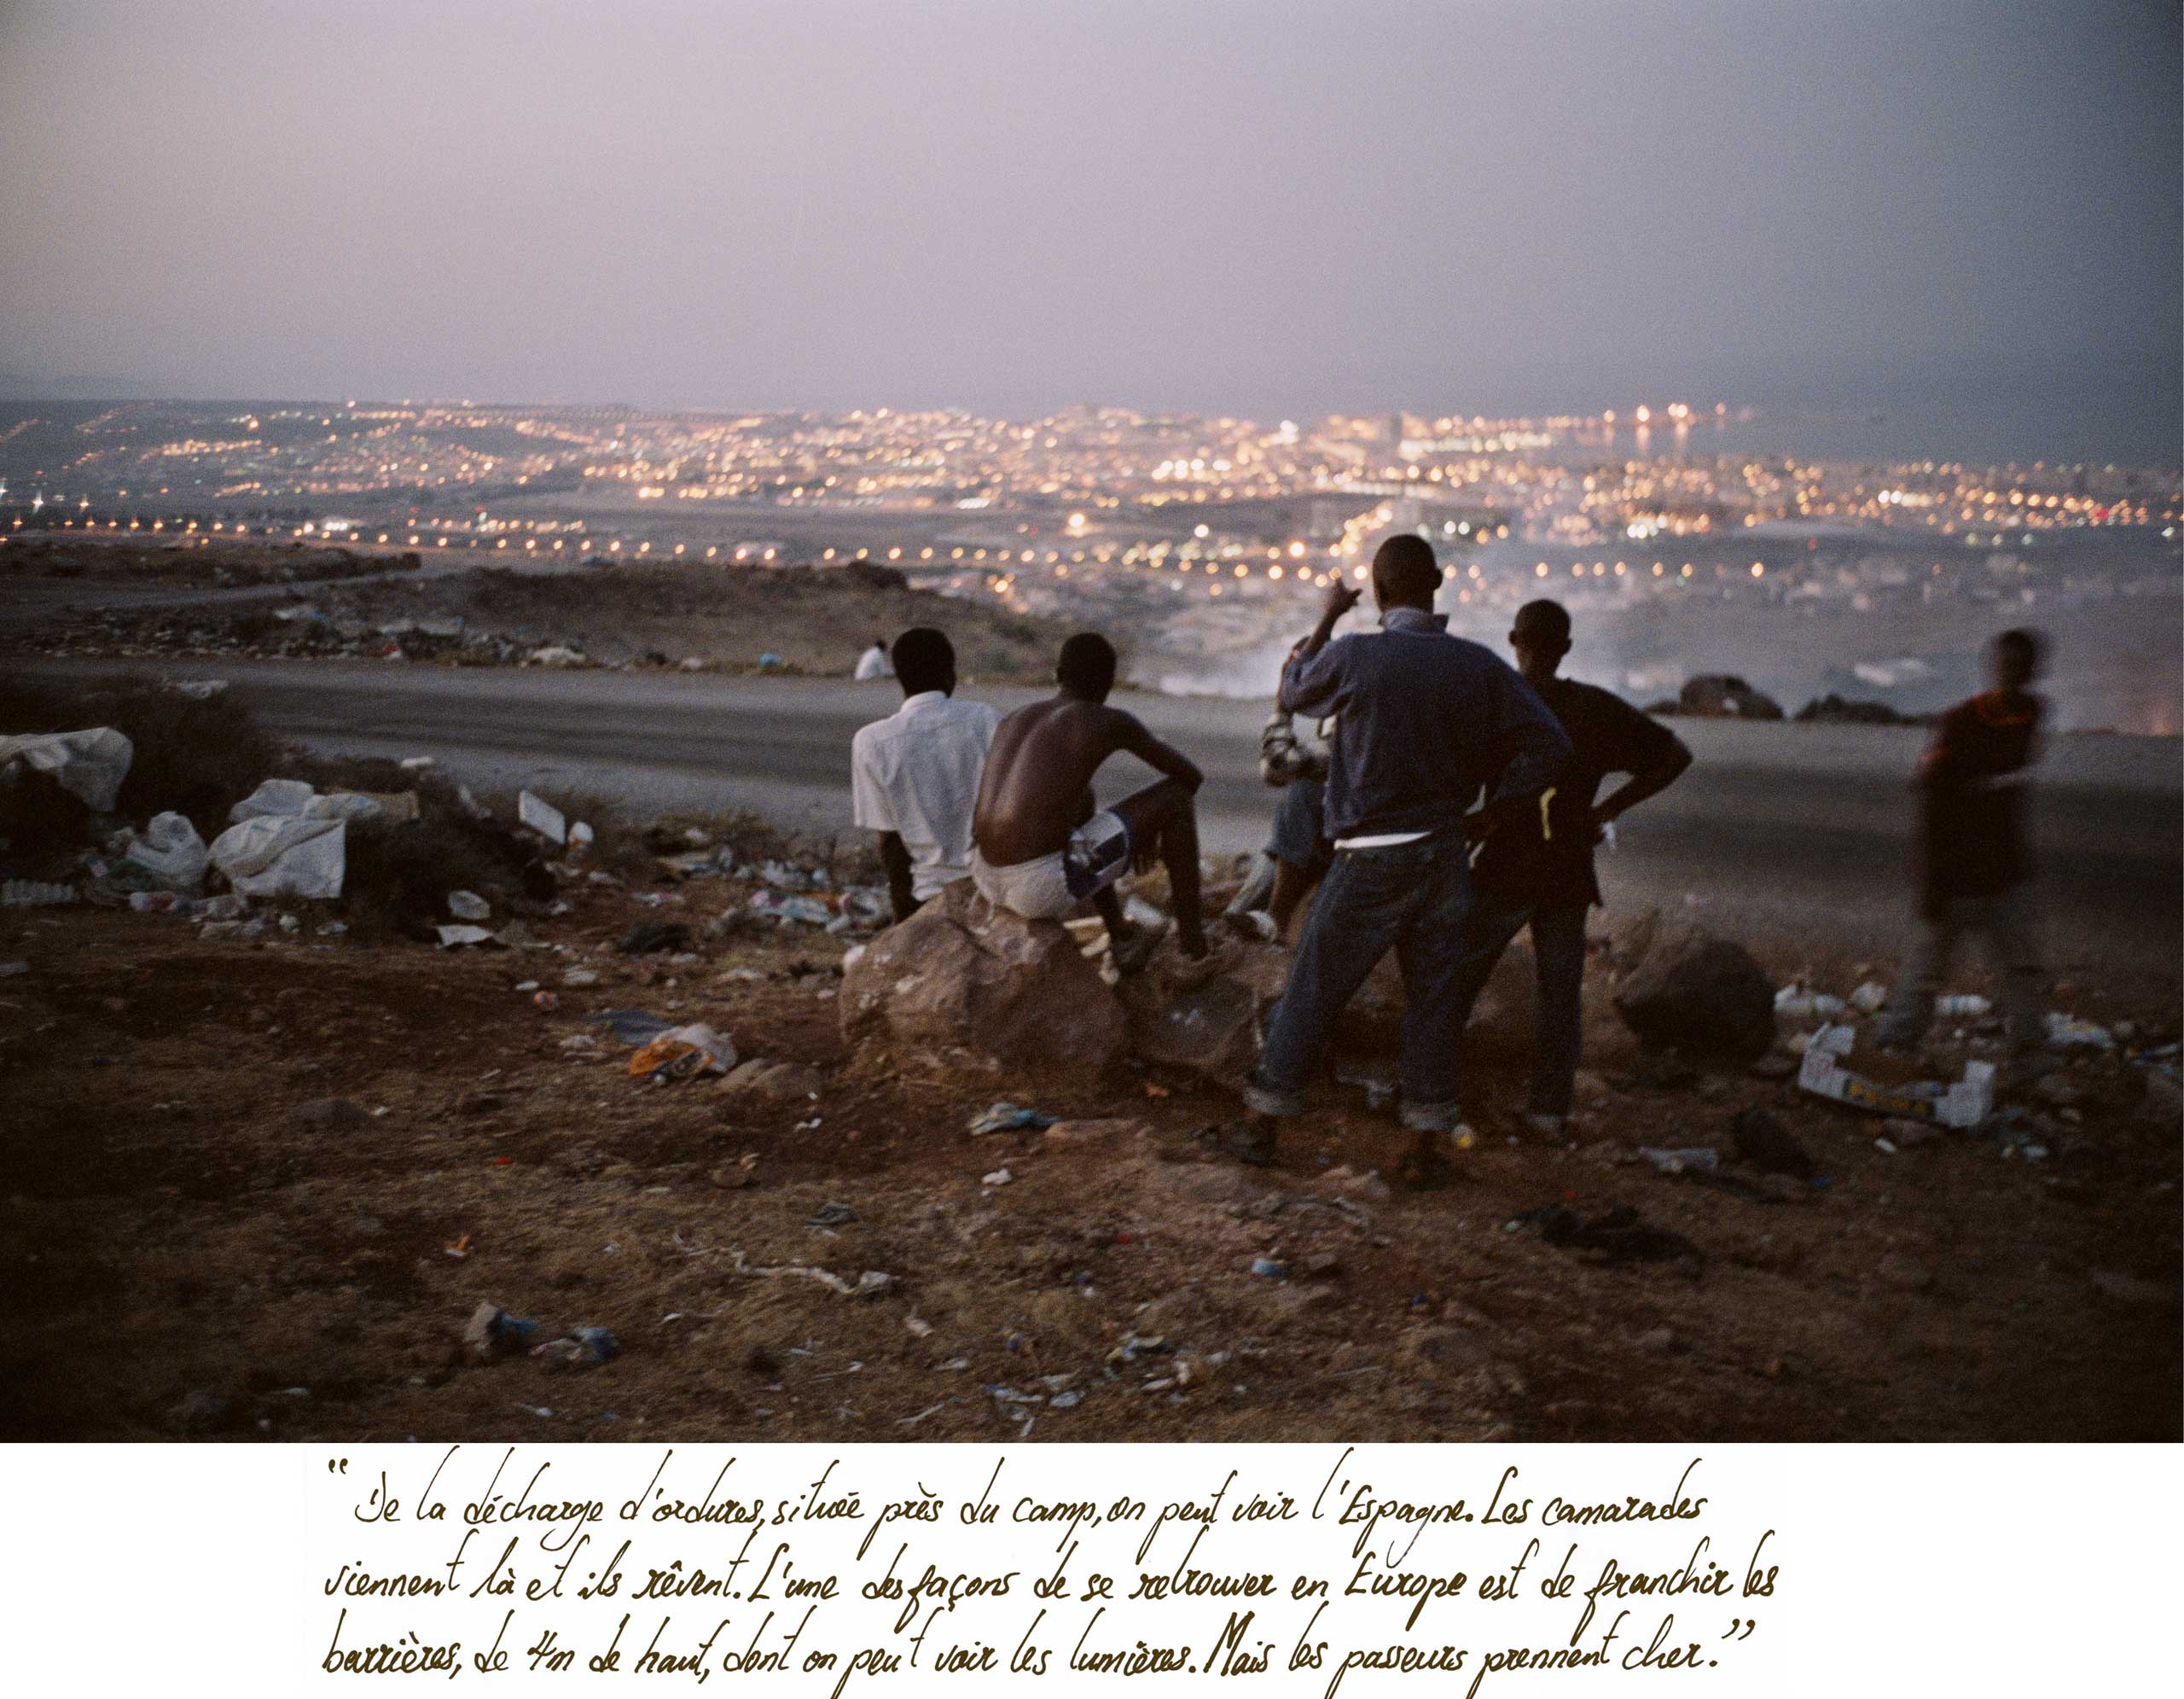 A group of men look out to the city of Melilla, Spain from a garbage dump in Morocco in Nov. 2004. It is a short distance from North Africa to mainland Spain.